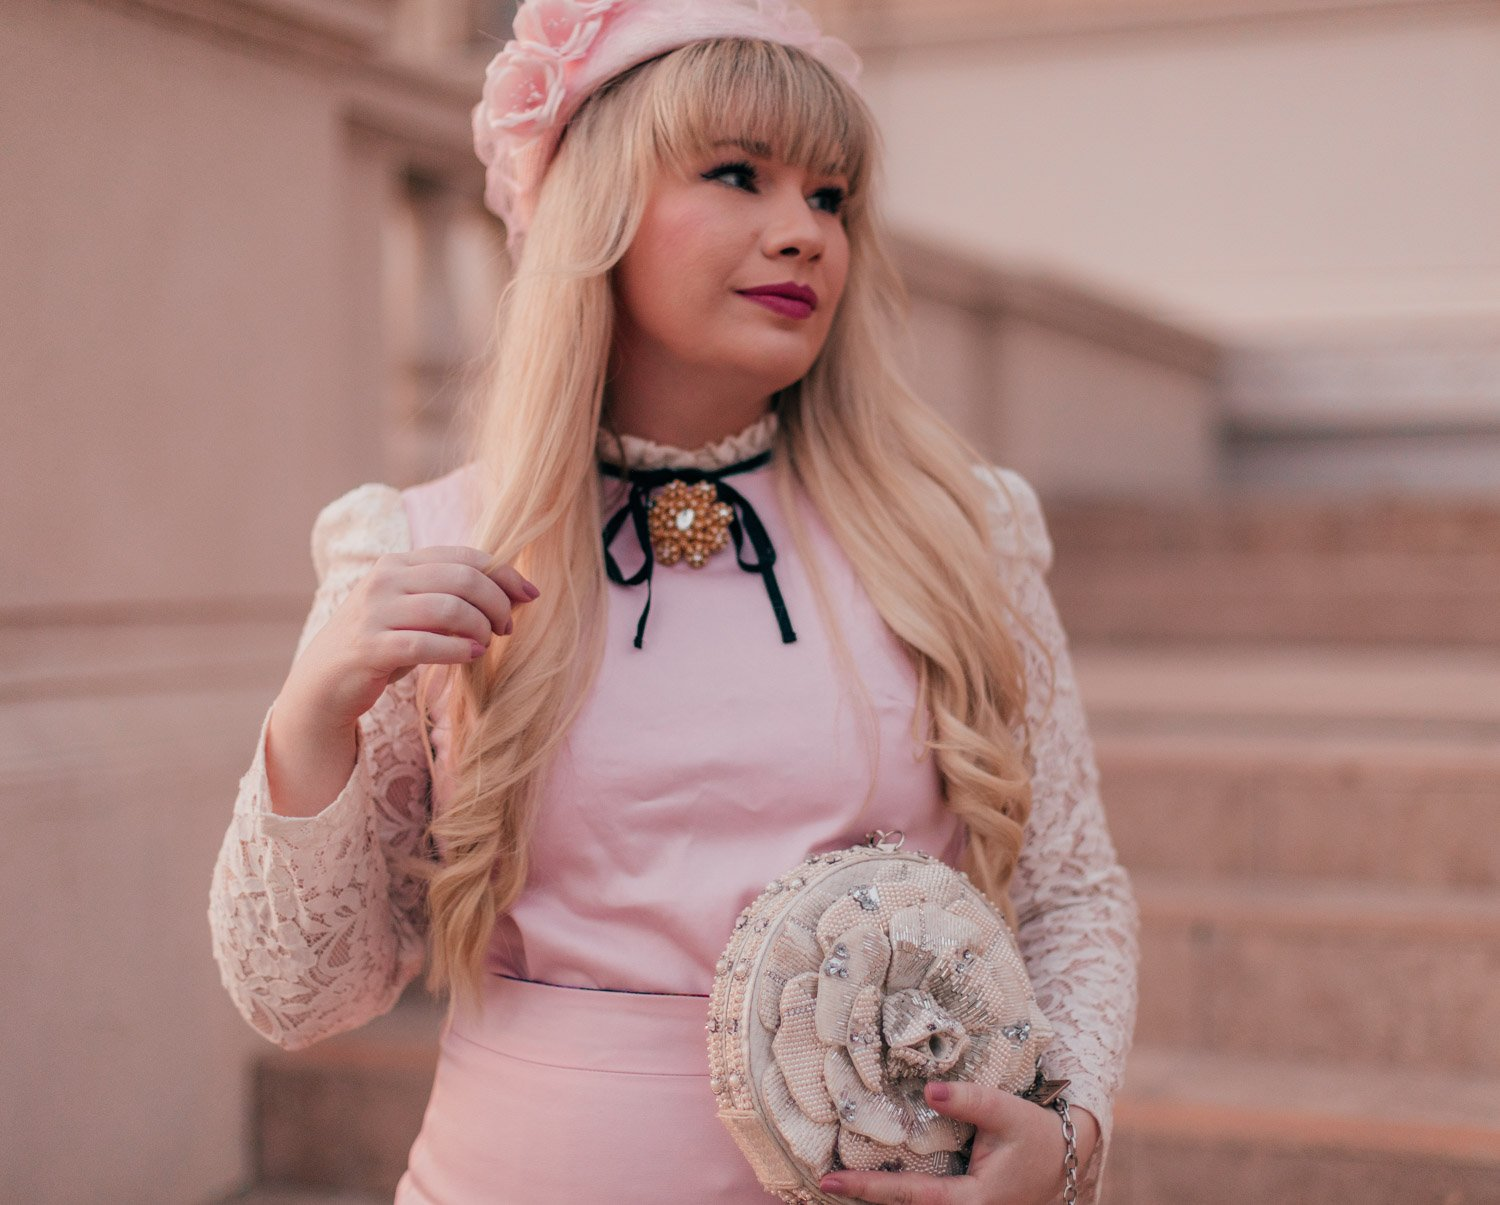 Feminine Fashion Blogger Elizabeth Hugen of Lizzie in Lace wears a girly vintage aesthetic outfit for spring with a vintage Givenchy brooch